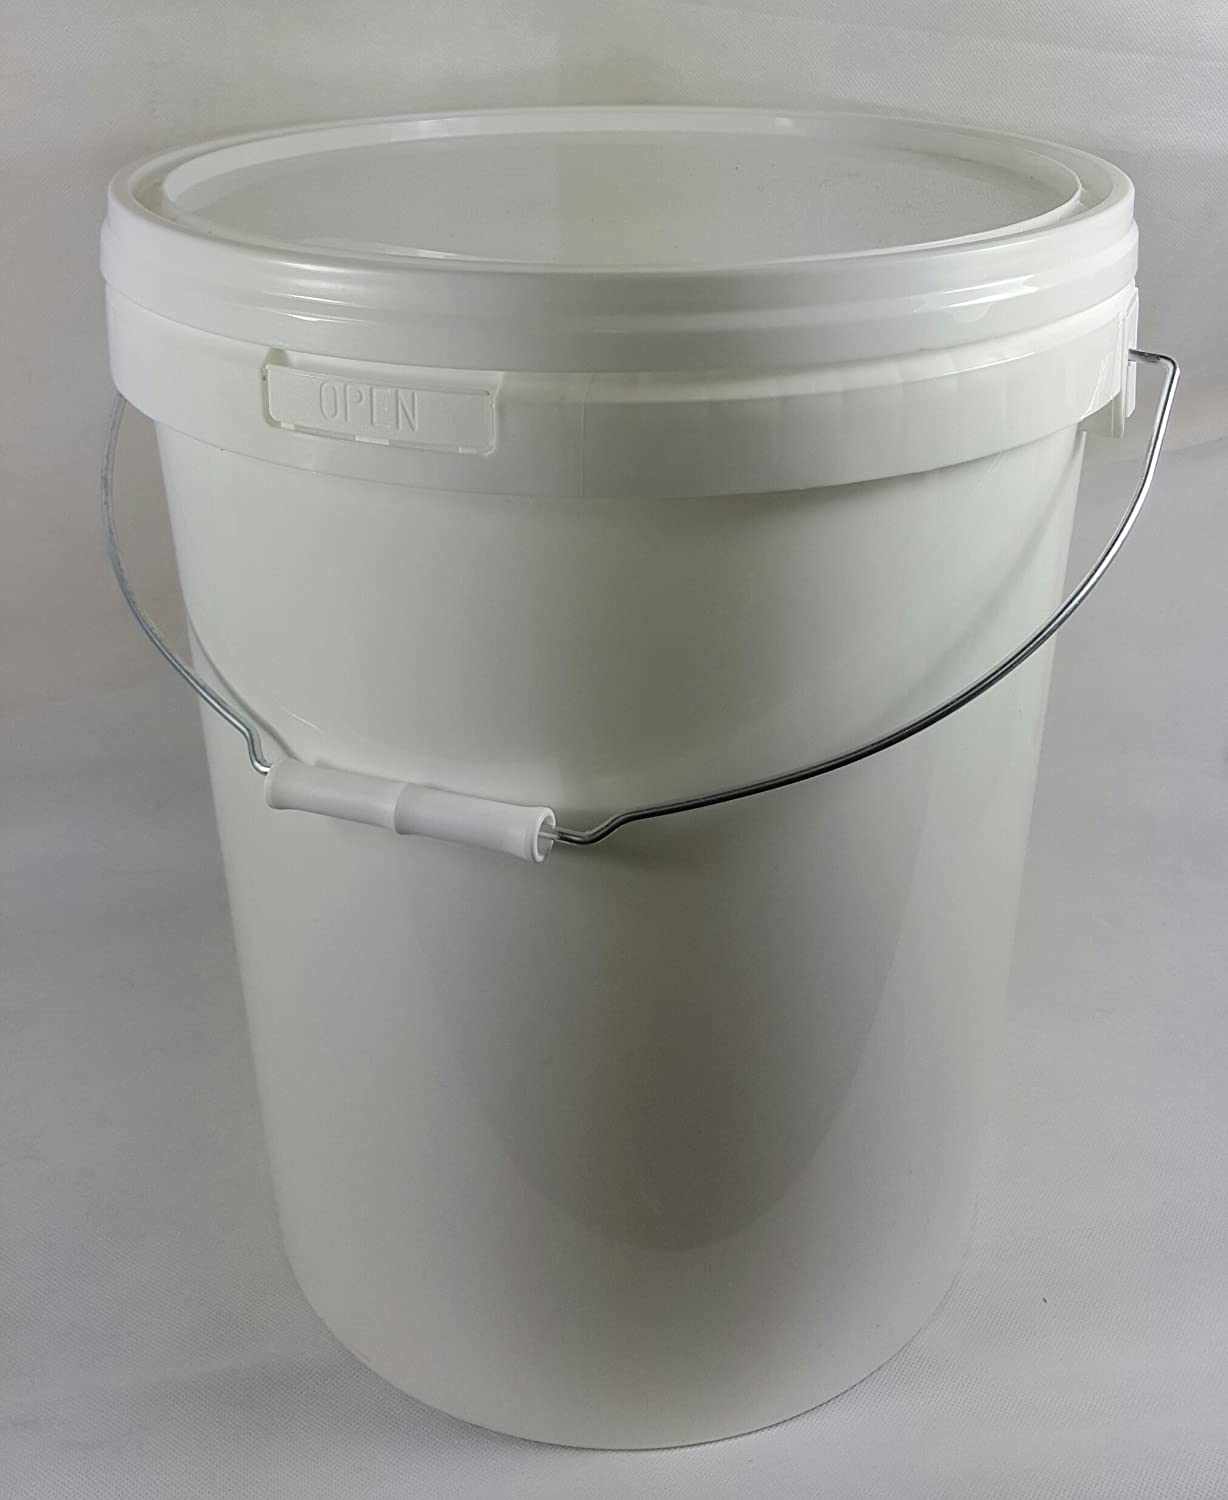 25 LITRE PLASTIC BUCKET WITH LID AND METAL HANDLE, HARD WEARING BUCKET RPC CONTAINERS LTD